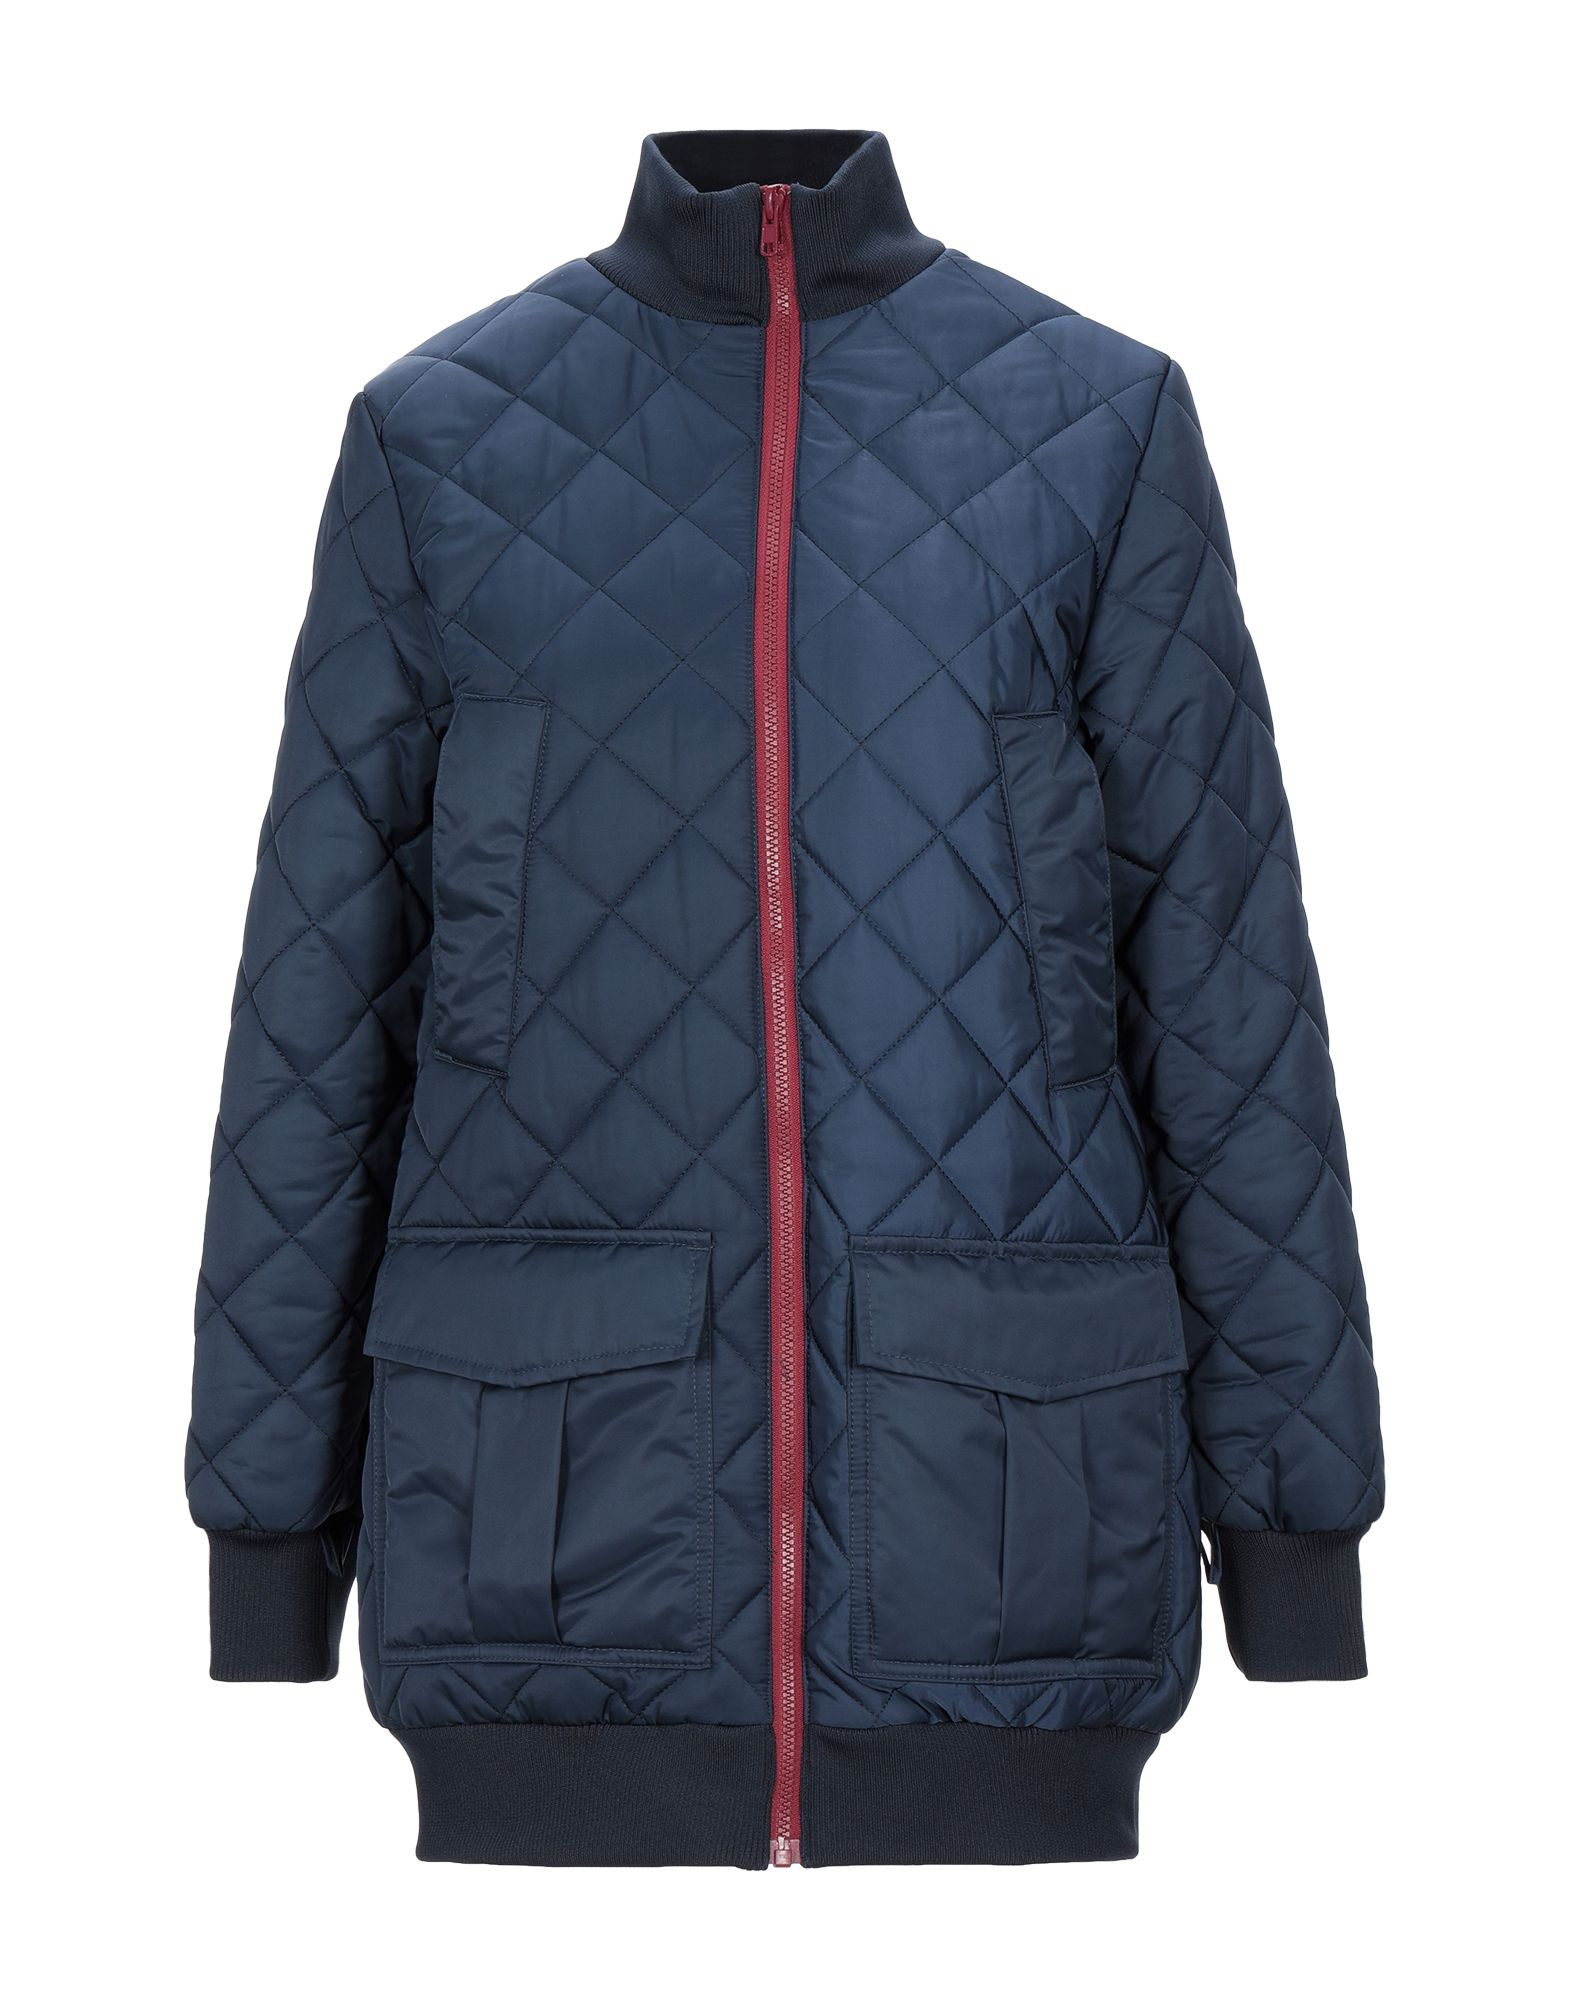 GANNI Synthetic Down Jackets. techno fabric, quilted, no appliqués, solid color, single-breasted, zipper closure, turtleneck, multipockets, long sleeves, knitted cuffs, internal padding, elasticated waist, large sized. 100% Polyester